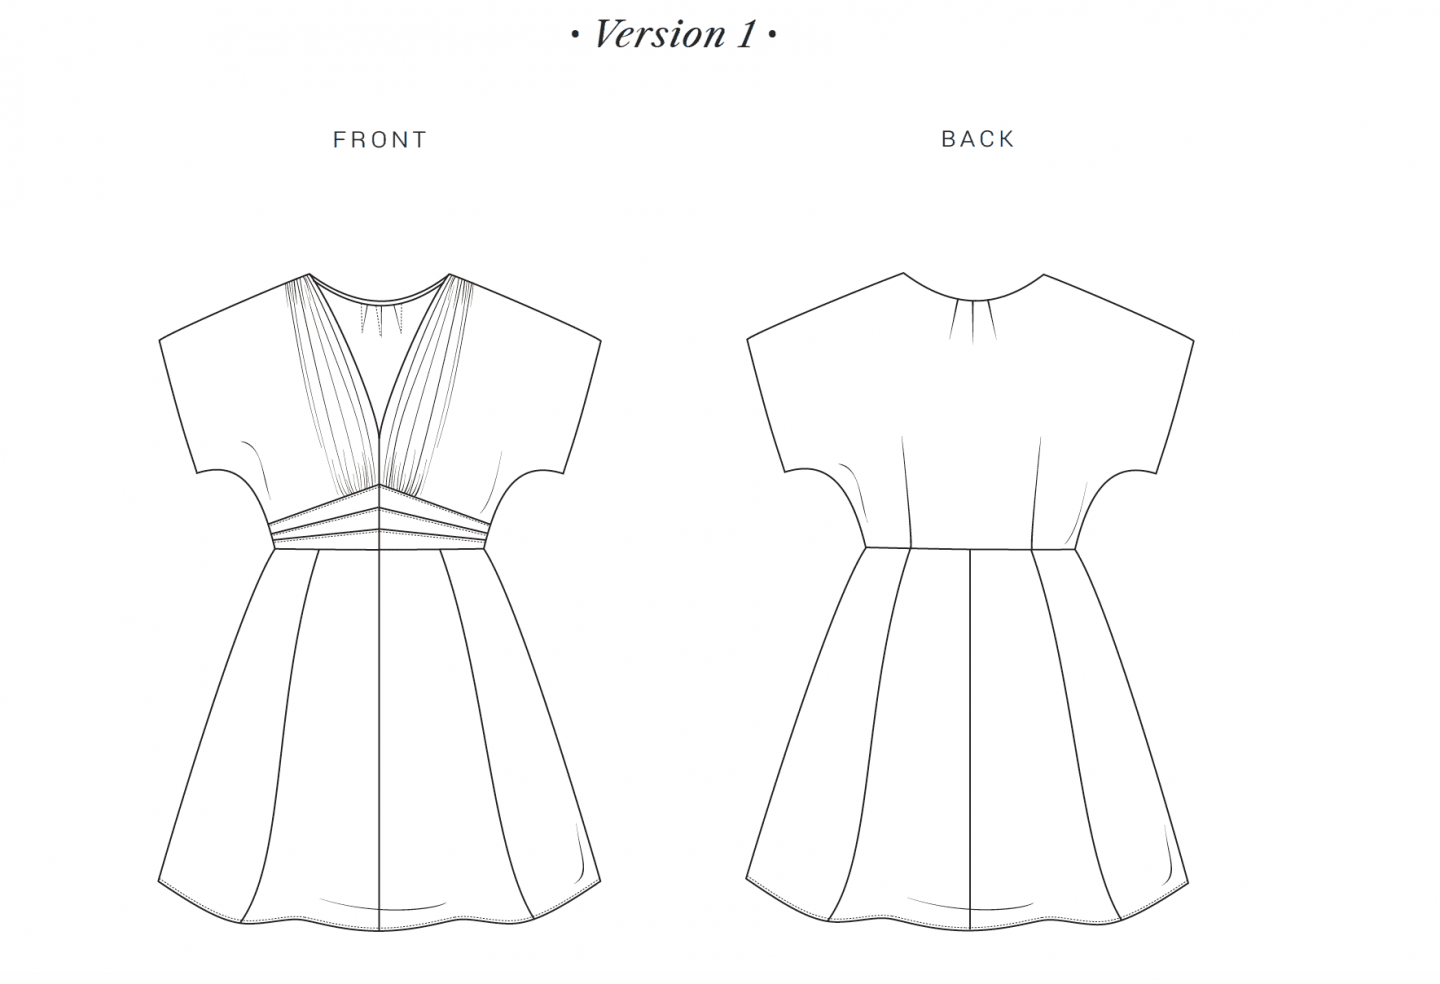 Image of line drawing for the Myrna dress, version 1, a shorter version